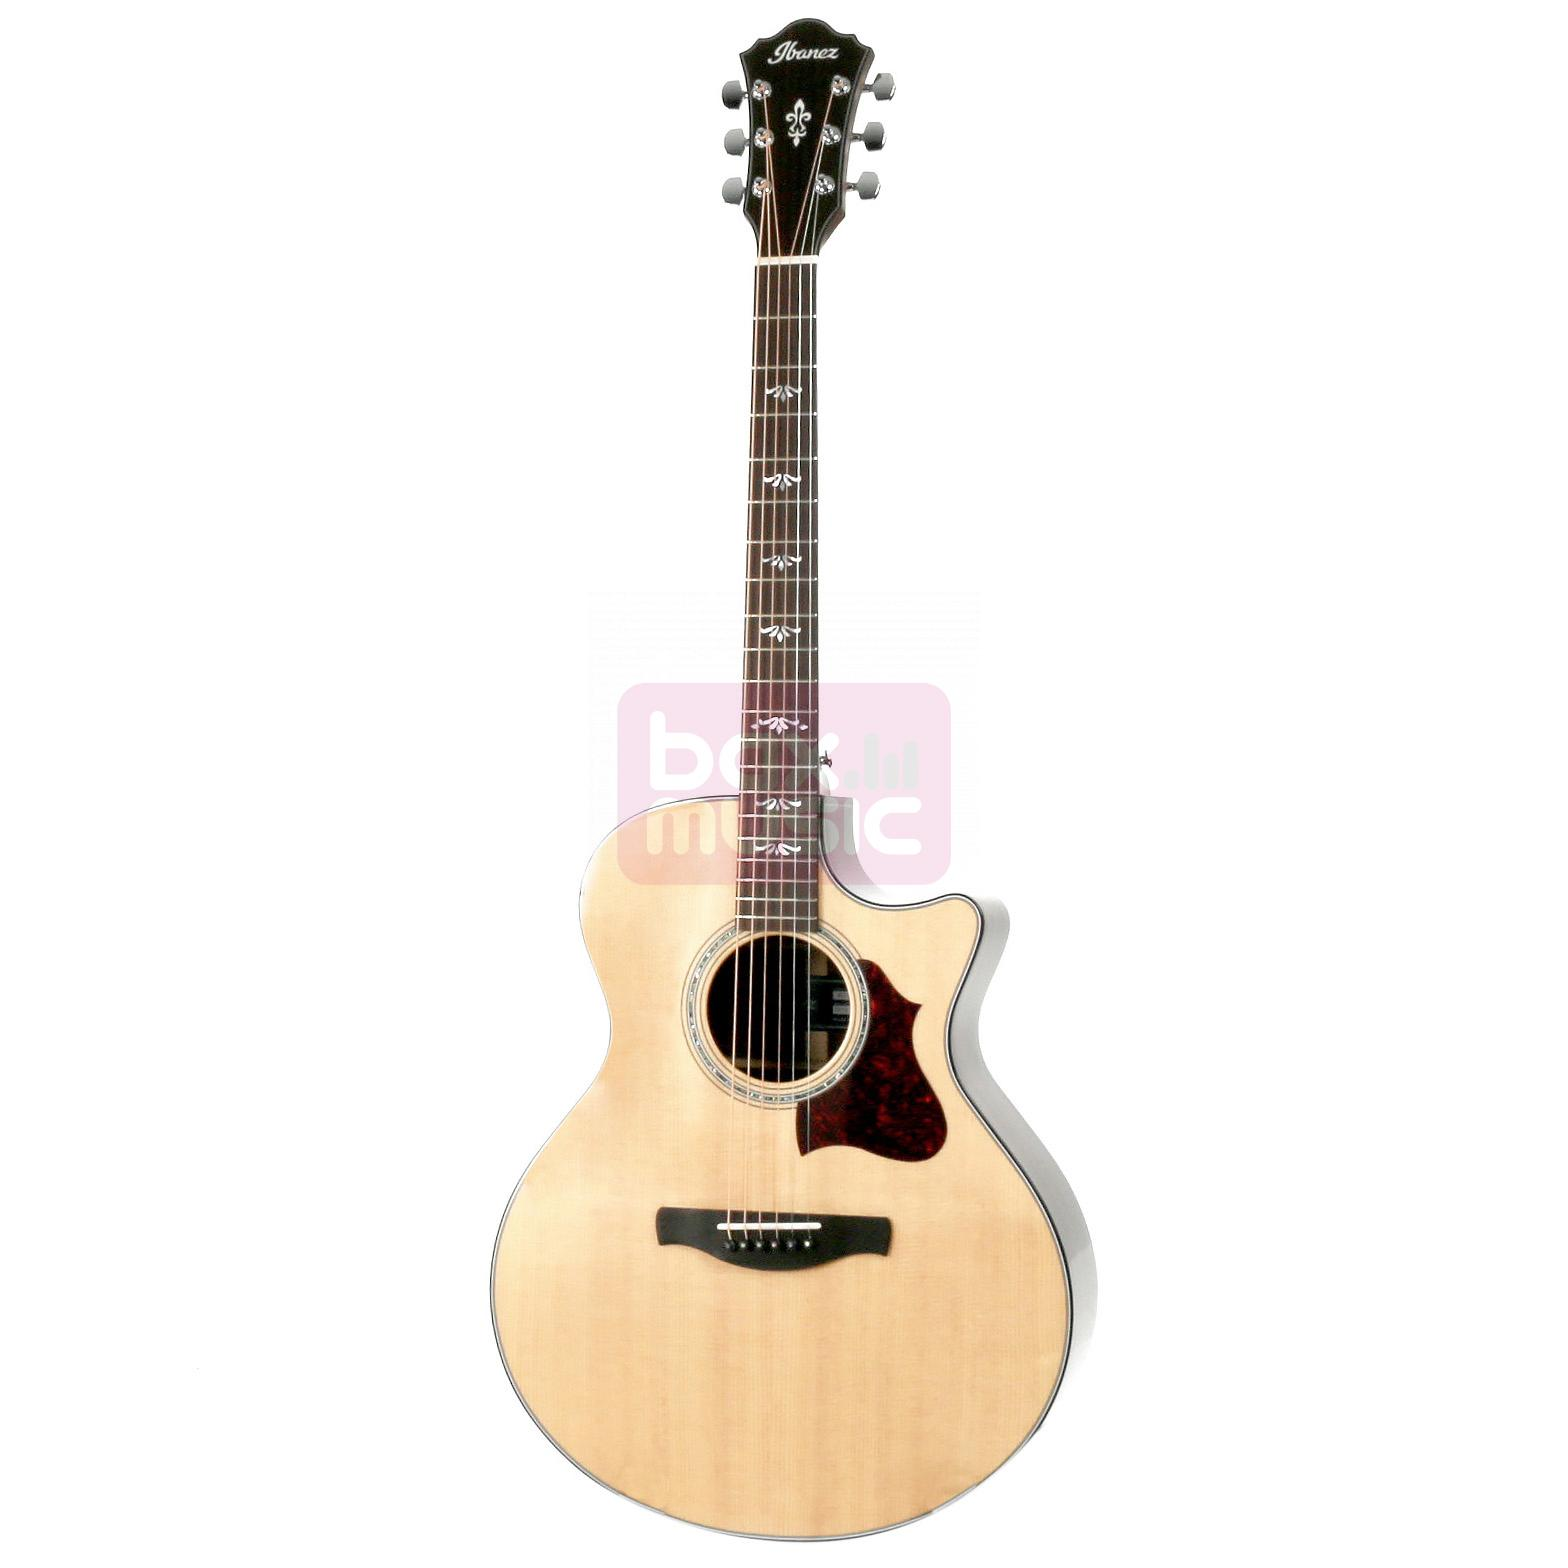 Ibanez AE500 Natural High Gloss met koffer